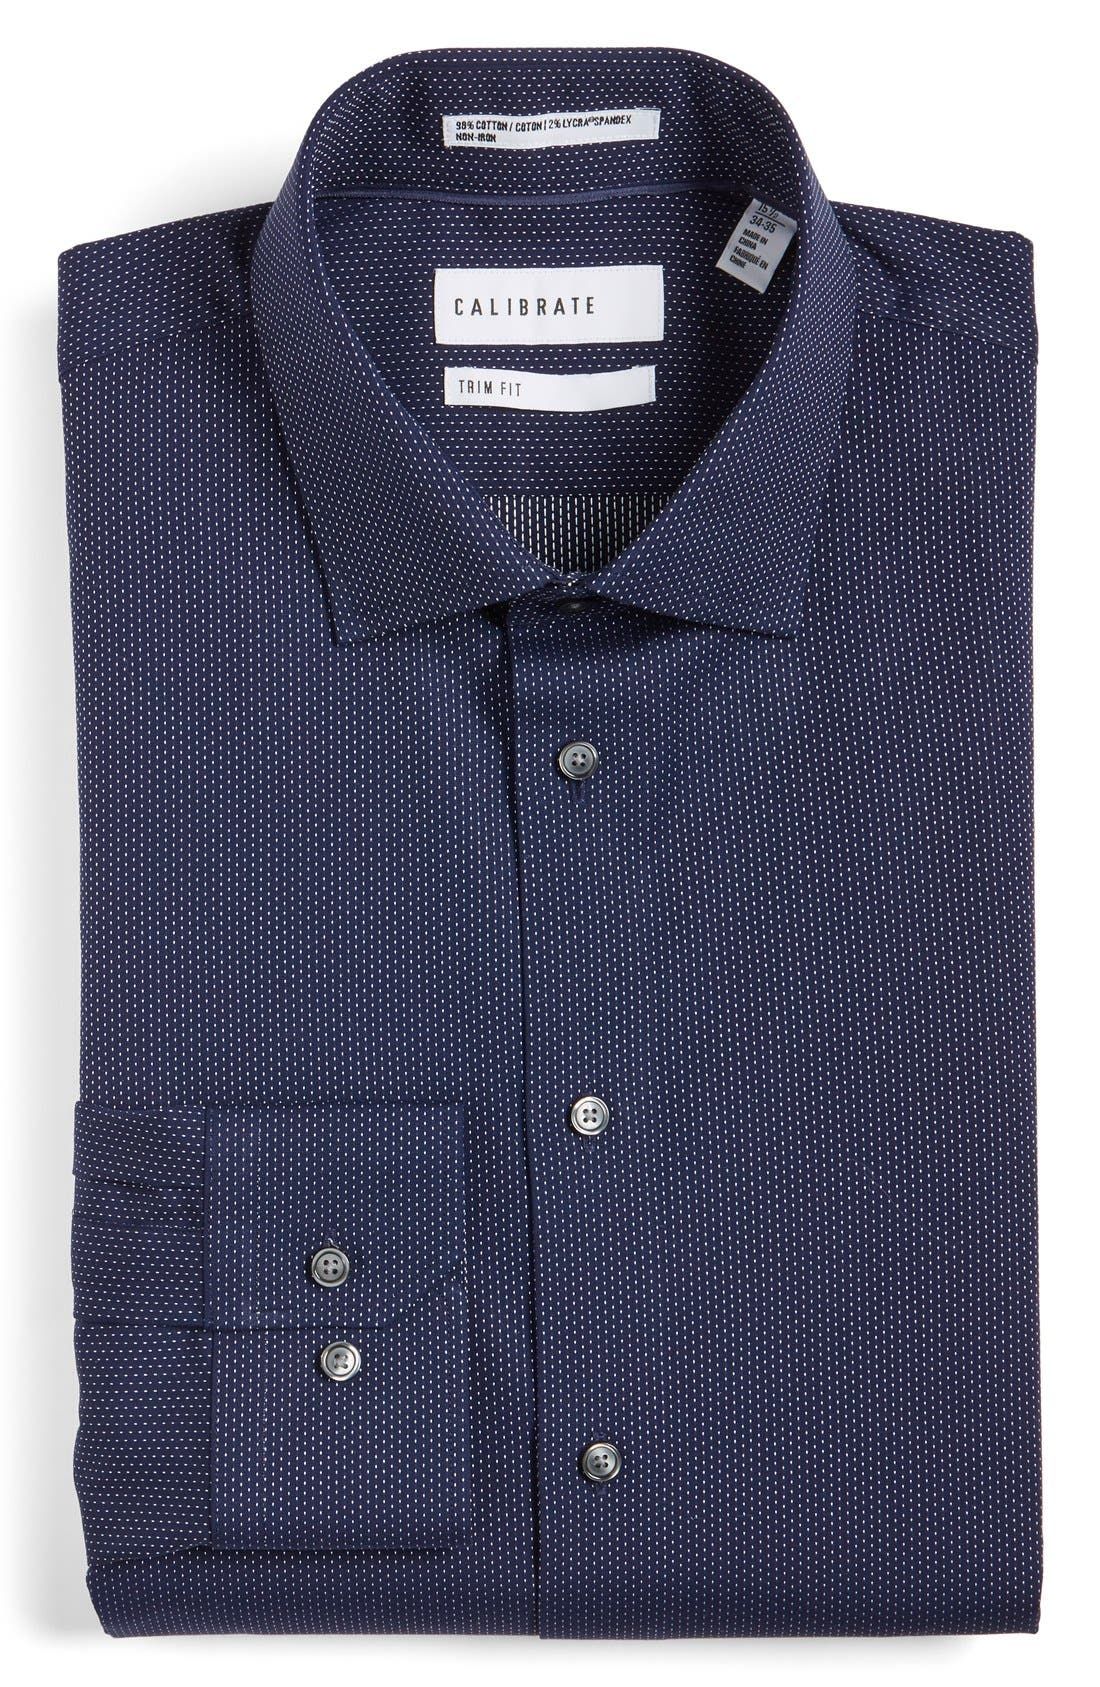 Trim Fit Non-Iron Microdot Dress Shirt,                             Main thumbnail 1, color,                             Navy Peacoat